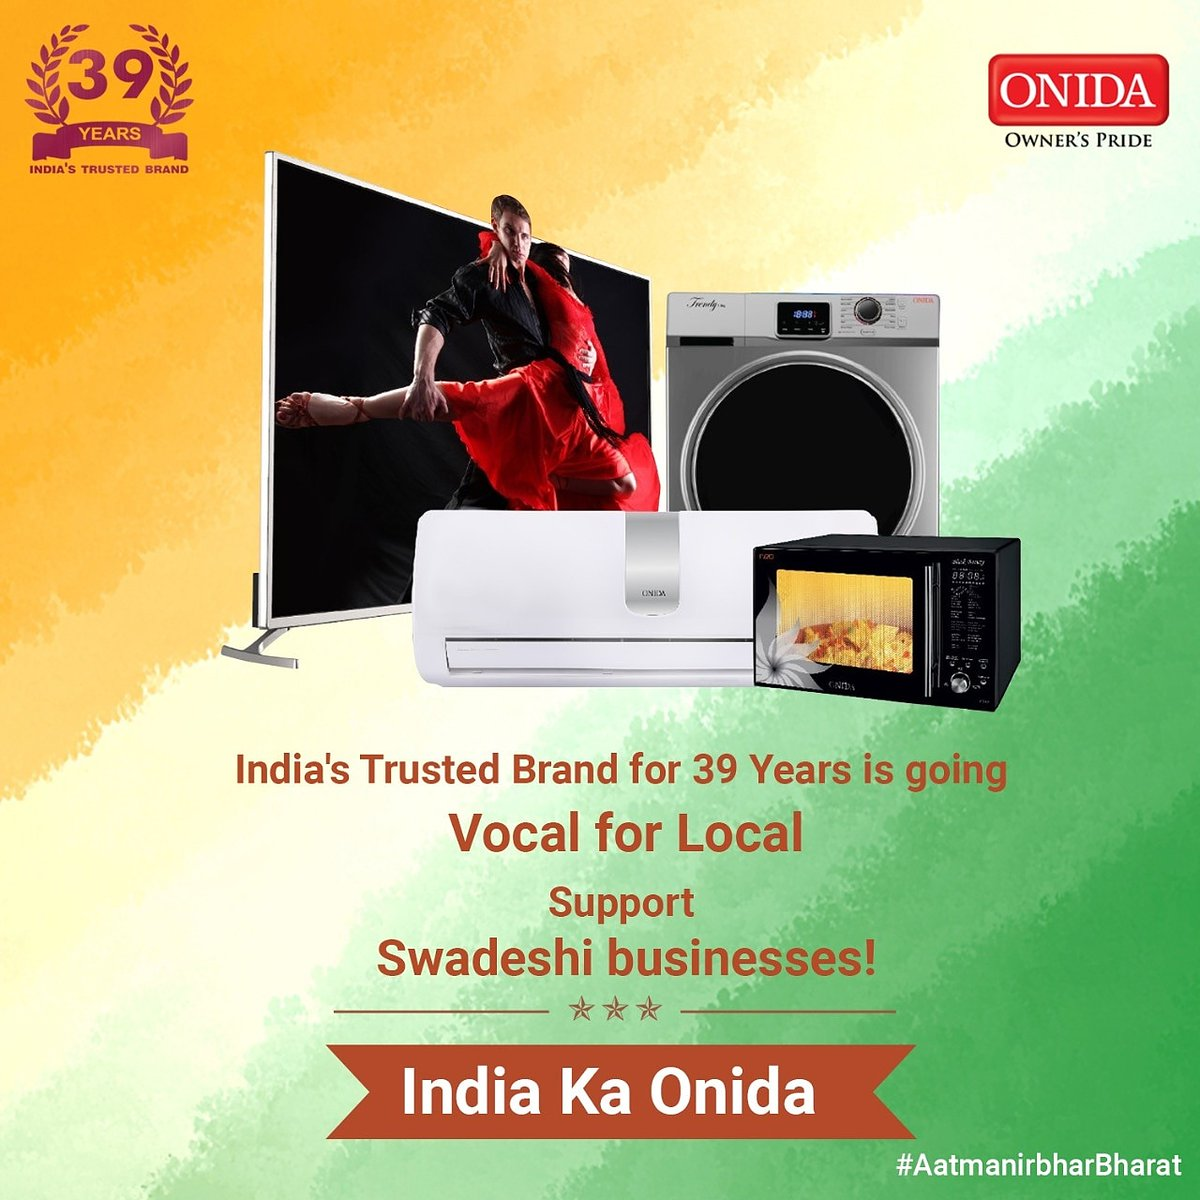 India's trusted brand with 39 years of Innovation is going #VocalForLocal  #AatmanirbharBharat #Onida https://t.co/4fQiyrqGPn https://t.co/JZsADsnv5a